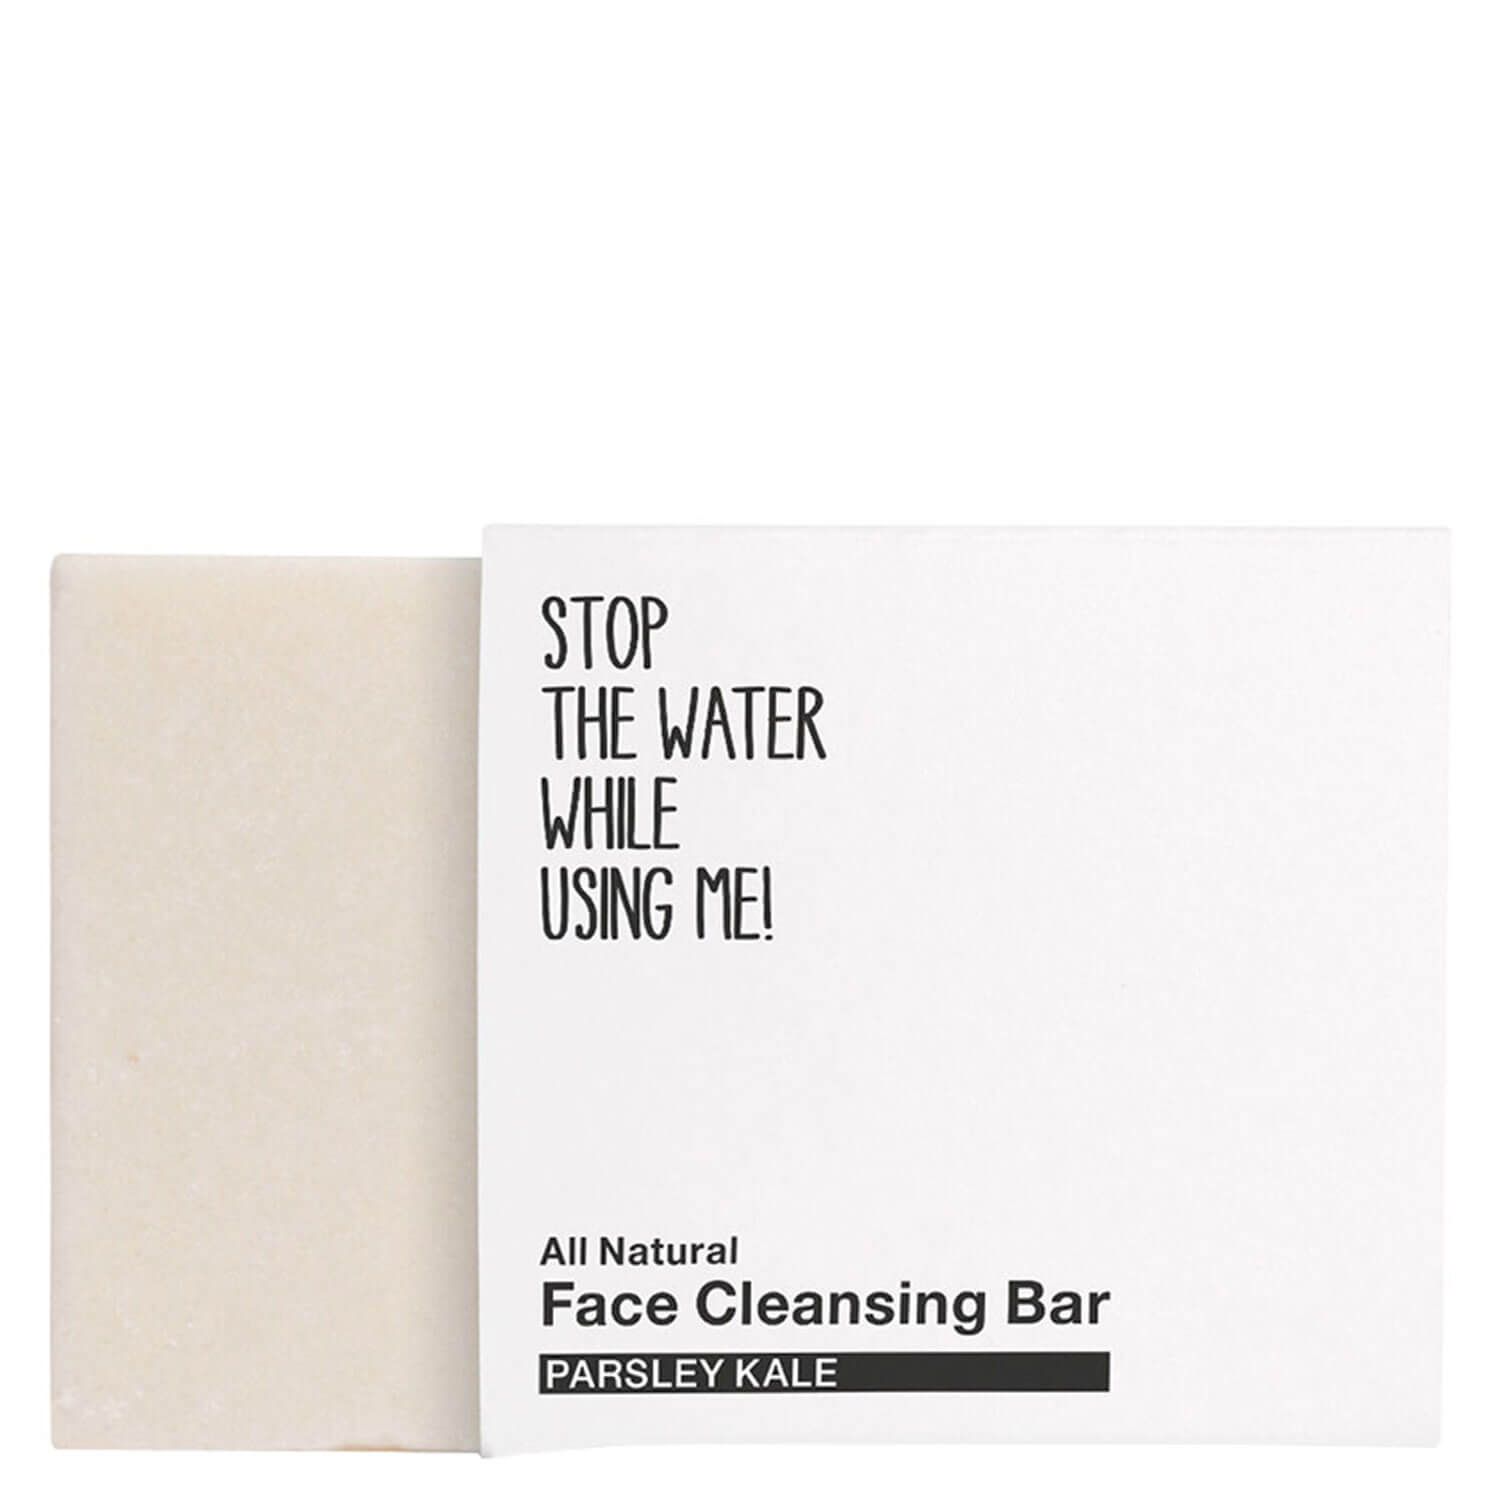 All Natural Face - Face Cleansing Bar Parsley Kale